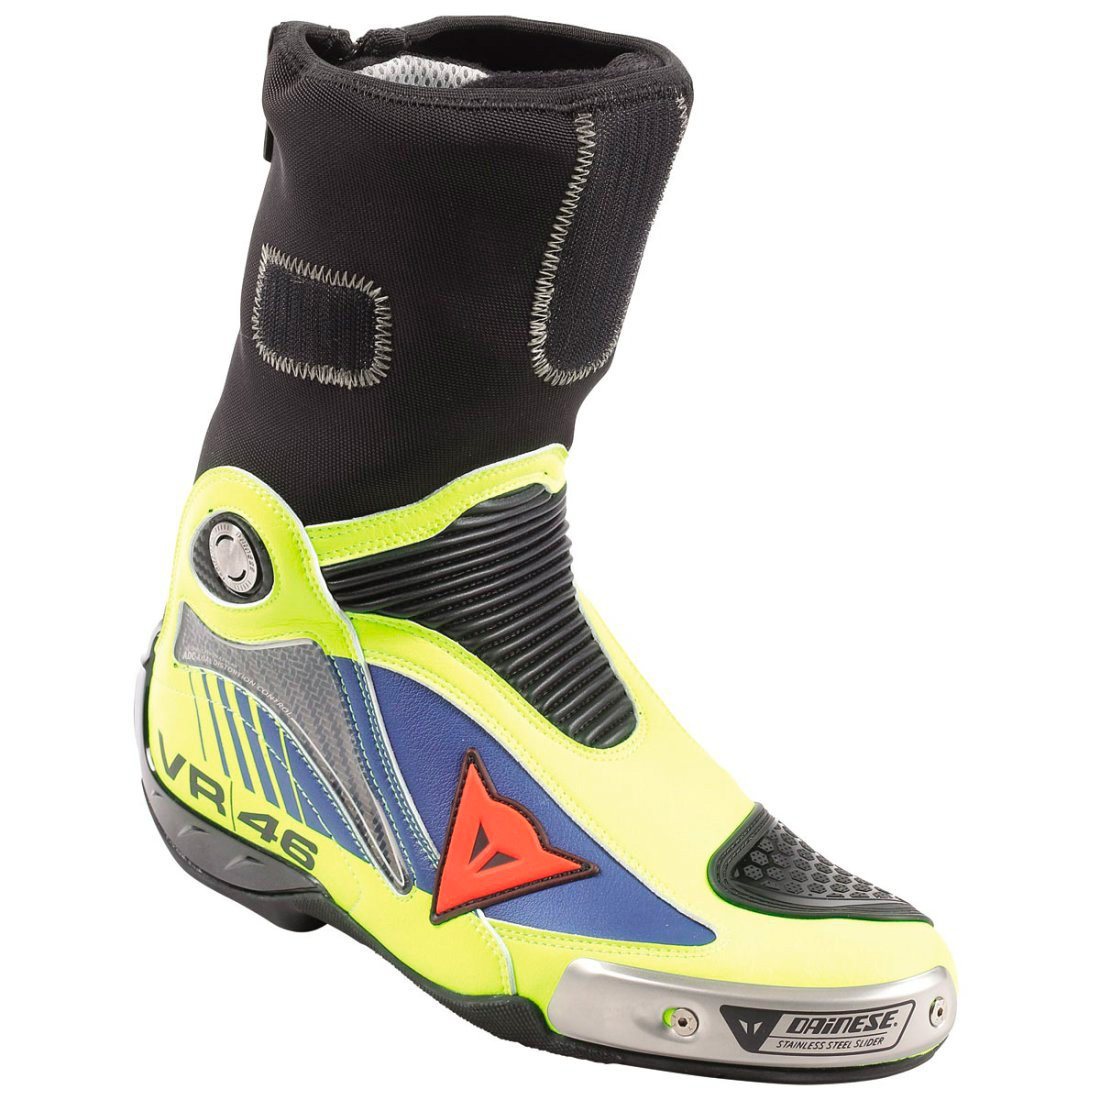 Fluo R Rossi In Dainese Bottes Axial Blue Yamaha Pro Replica Yellow D1 354LqRjA